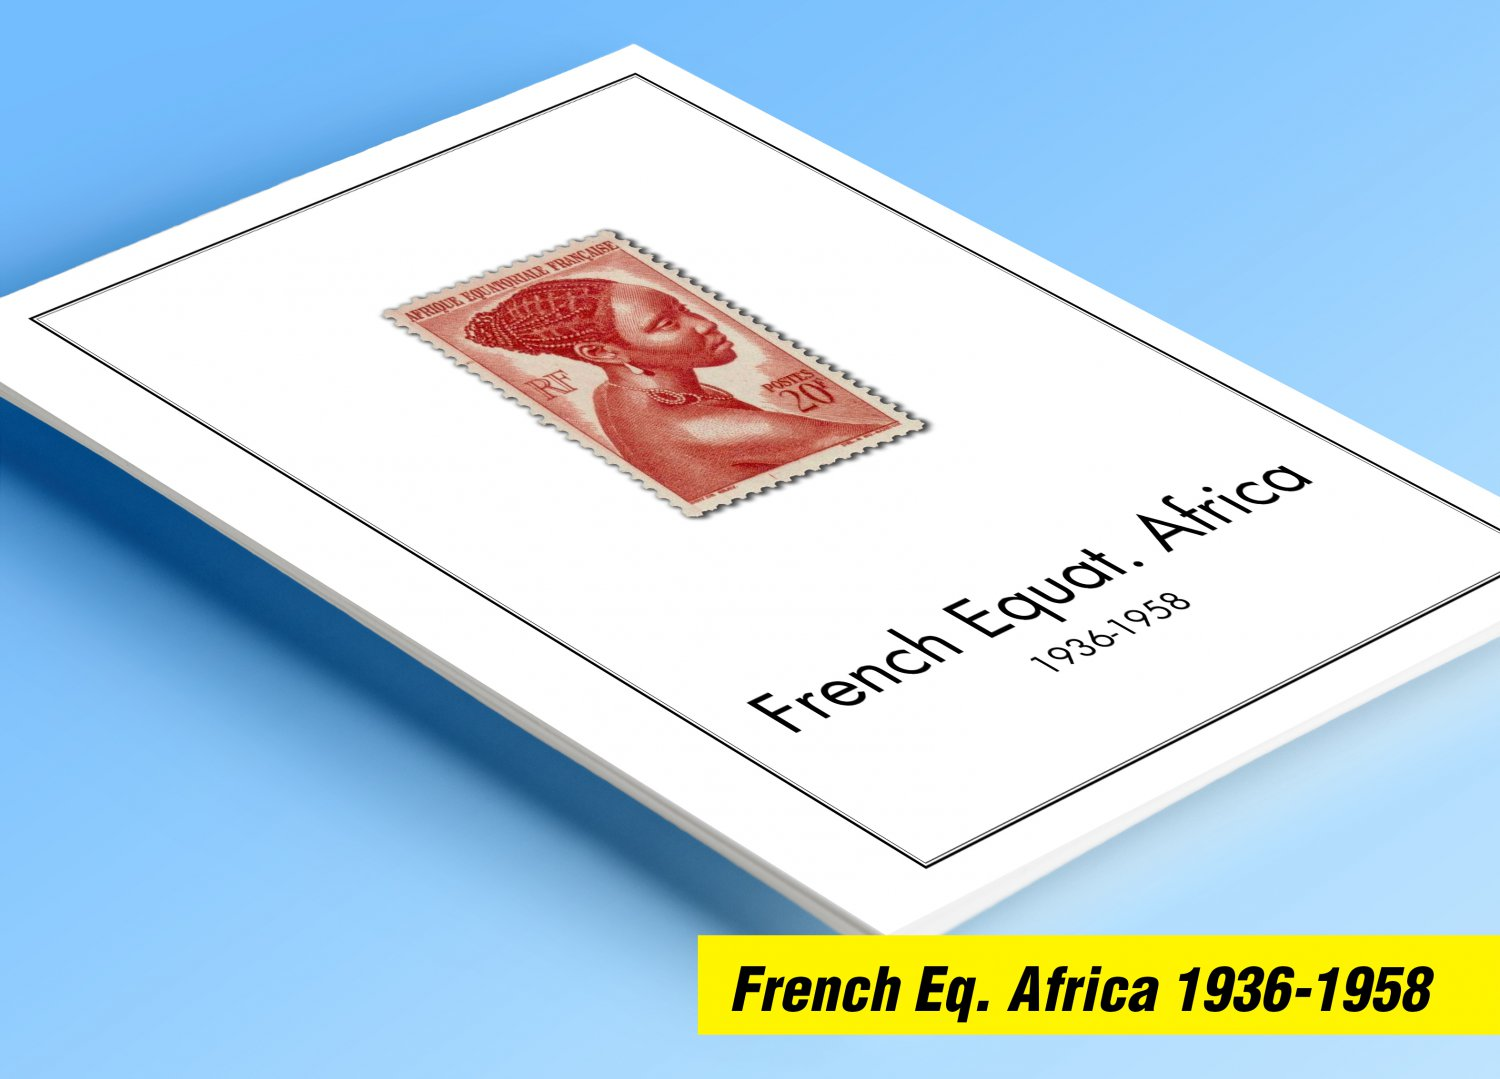 COLOR PRINTED FRENCH EQT. AFRICA 1936-1958 STAMP ALBUM PAGES (30 illustrated pages)